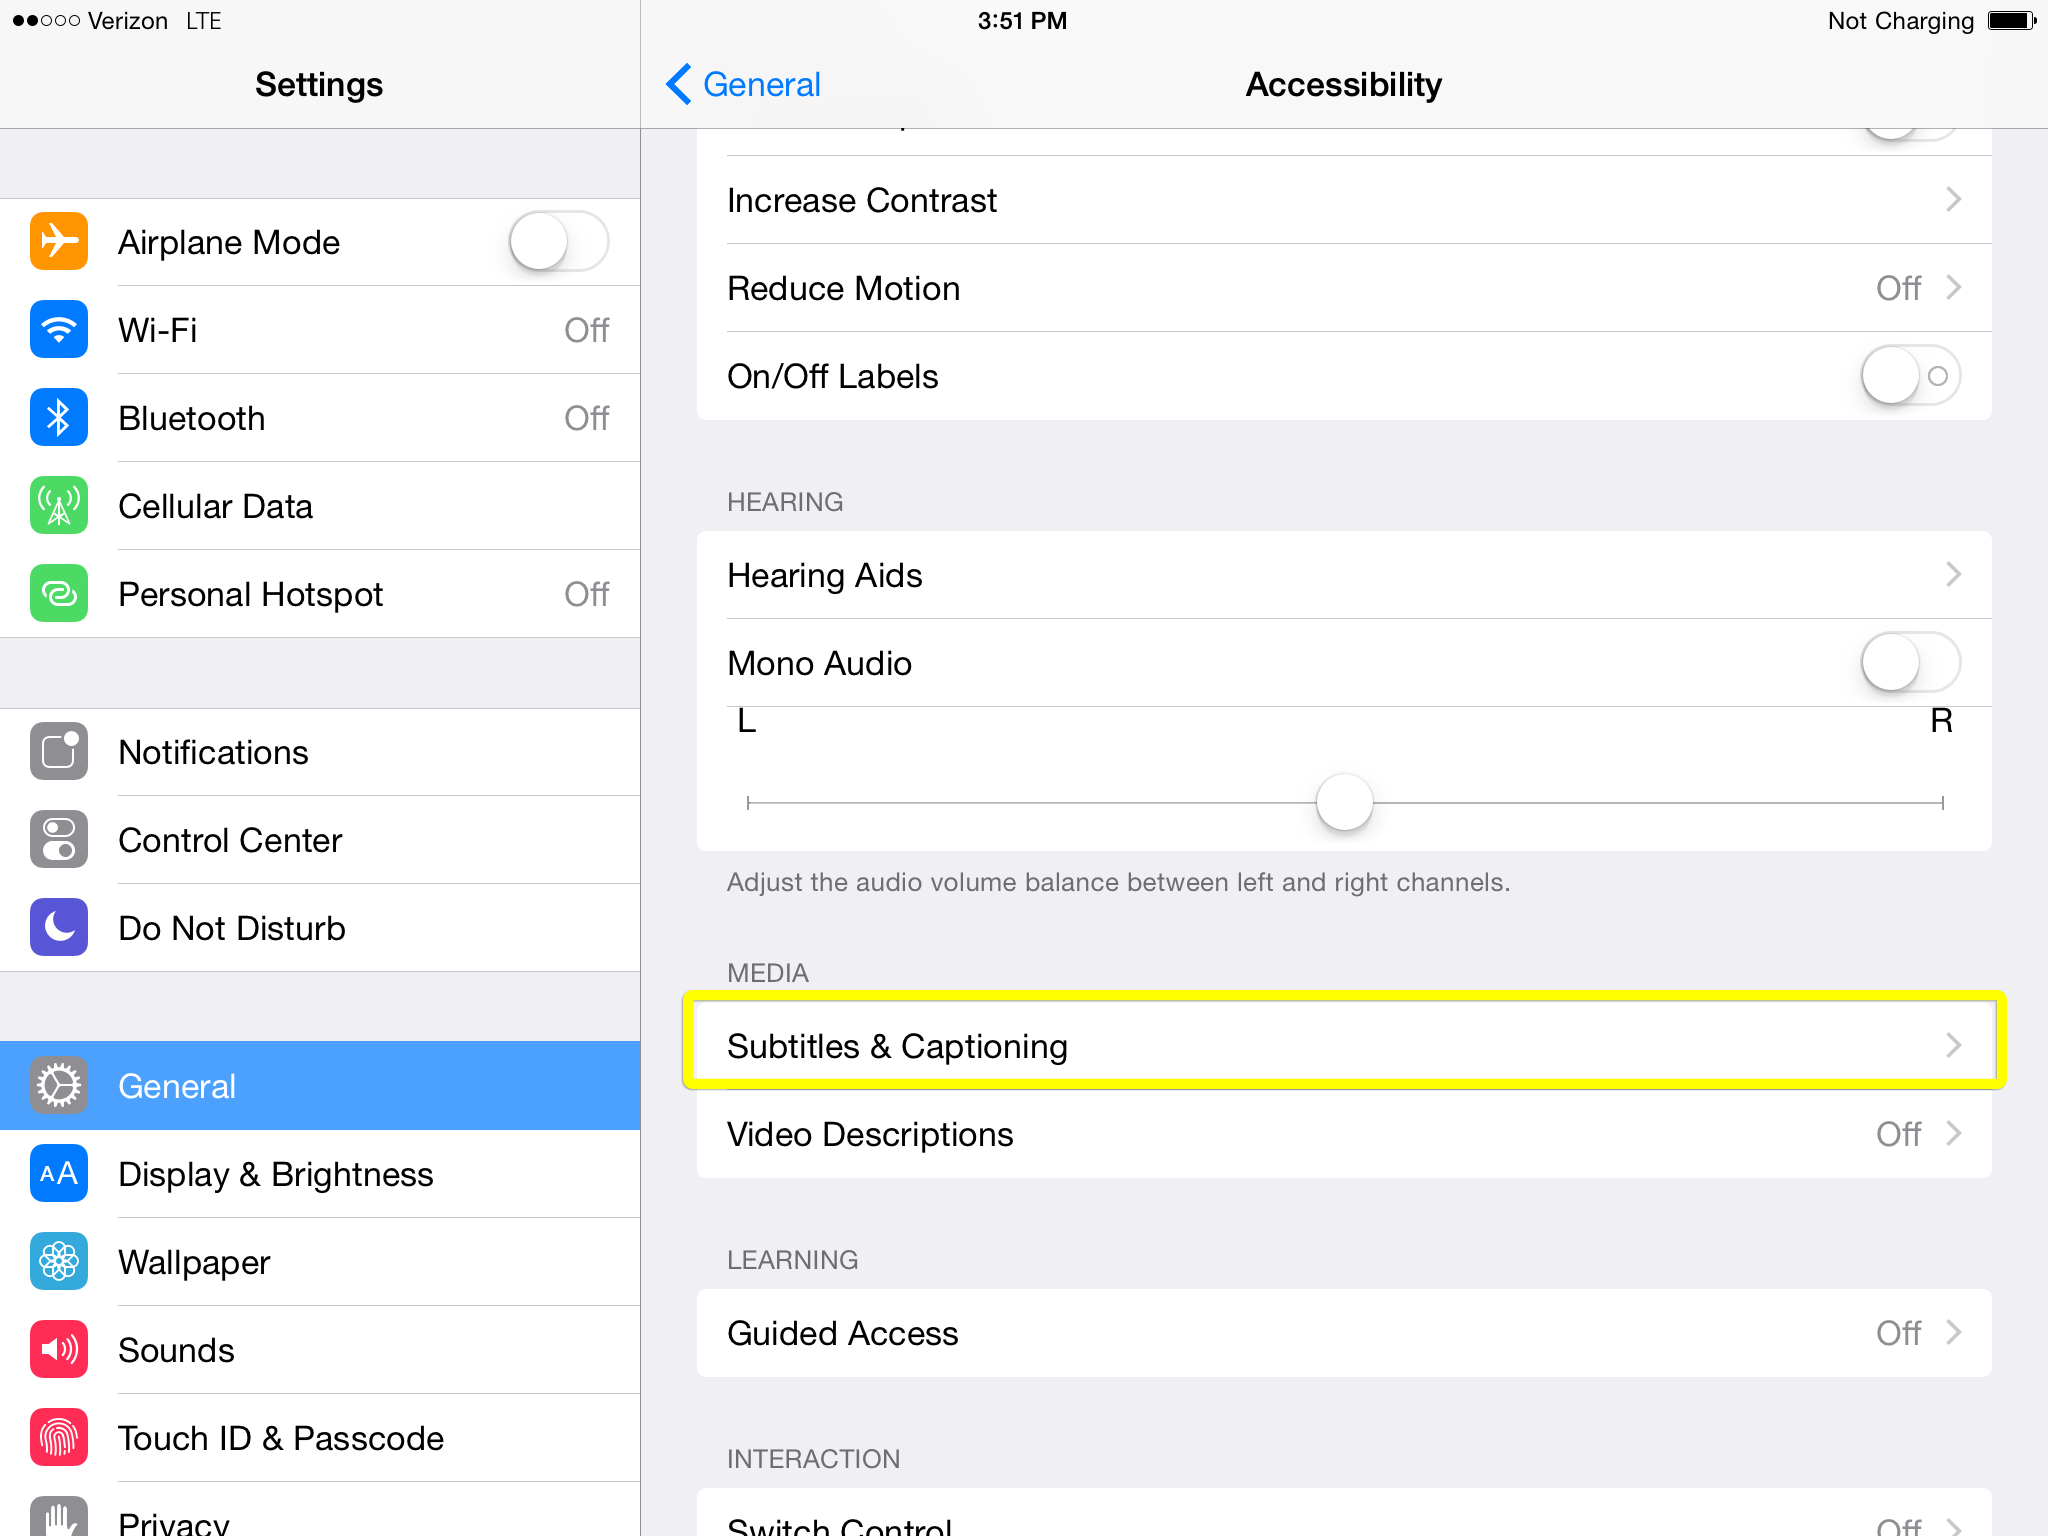 Subtitles and Captioning option under MEDIA in iPad accessibility settings